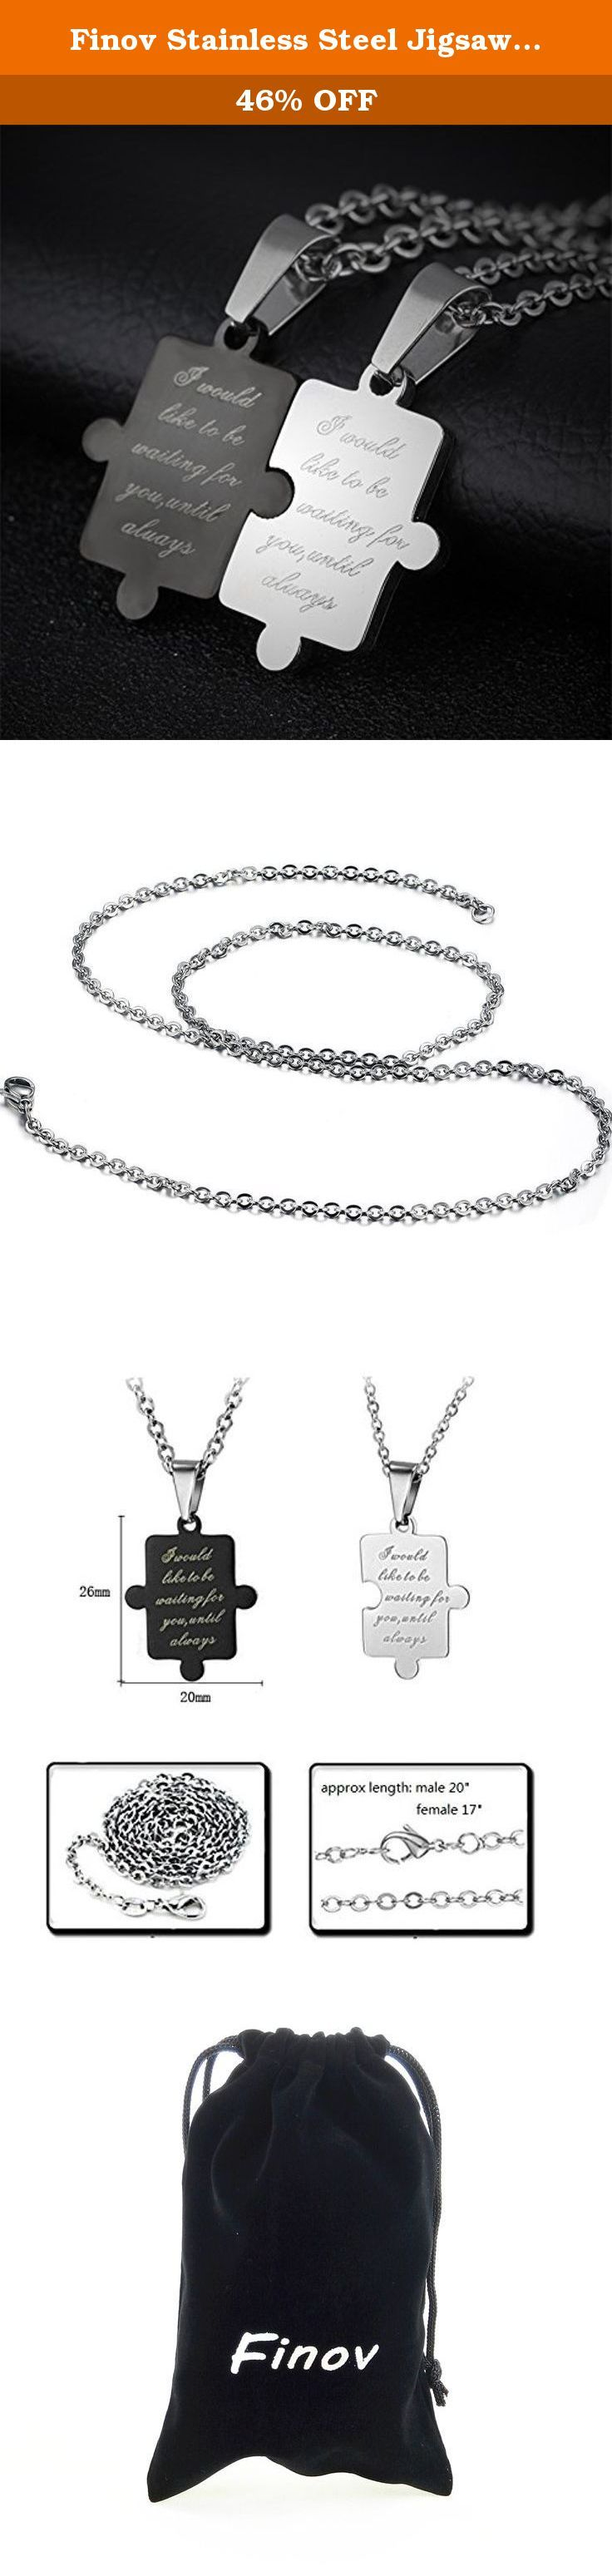 Finov Stainless Steel Jigsaw Pendants His Hers Puzzle Necklace for Couples. Titanium & stainless steel waiting for you his and hers love jigsaw puzzle couple necklaces. I would like to be waiting for you, until always. The pendant color is black and silver, symbolizes black and white, which makes a perfect couple.